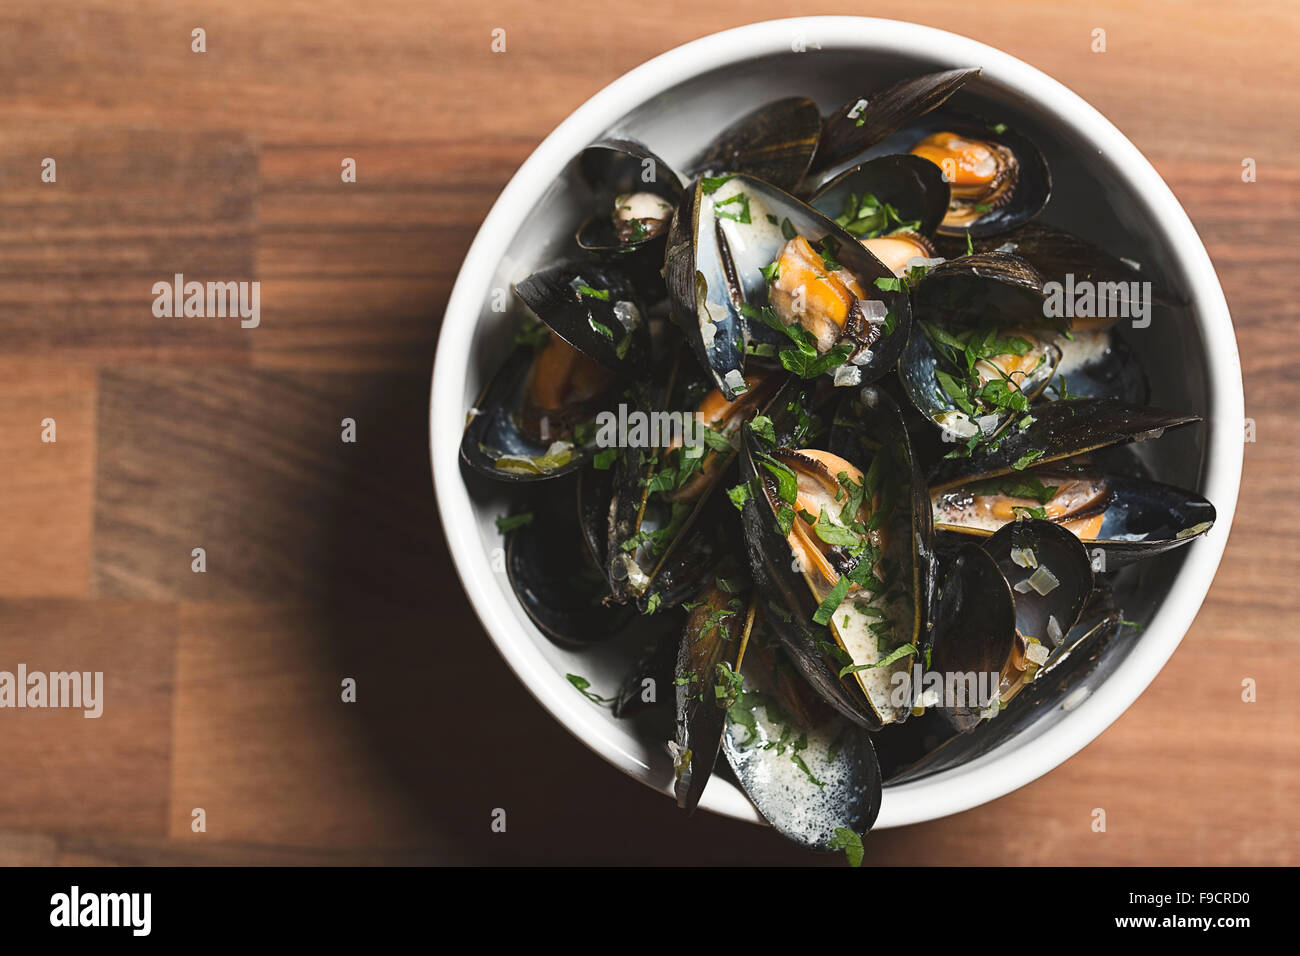 A bowl of cooked mussels in a white wine sauce - Stock Image